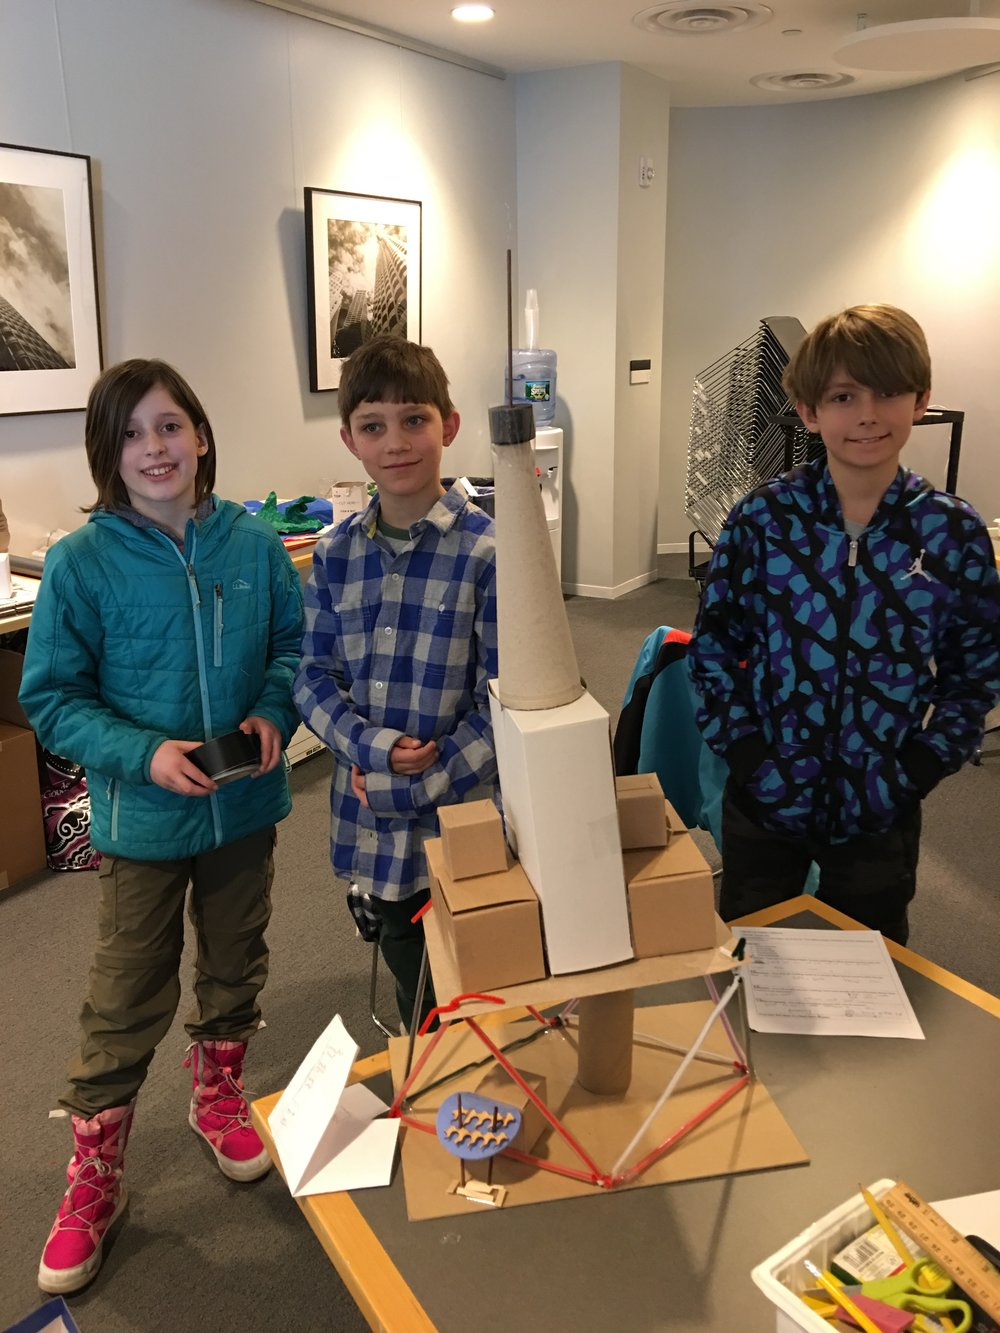 Our 4/5 class worked with BSA Architect Polly Carpenter on a Skyscraper Project.